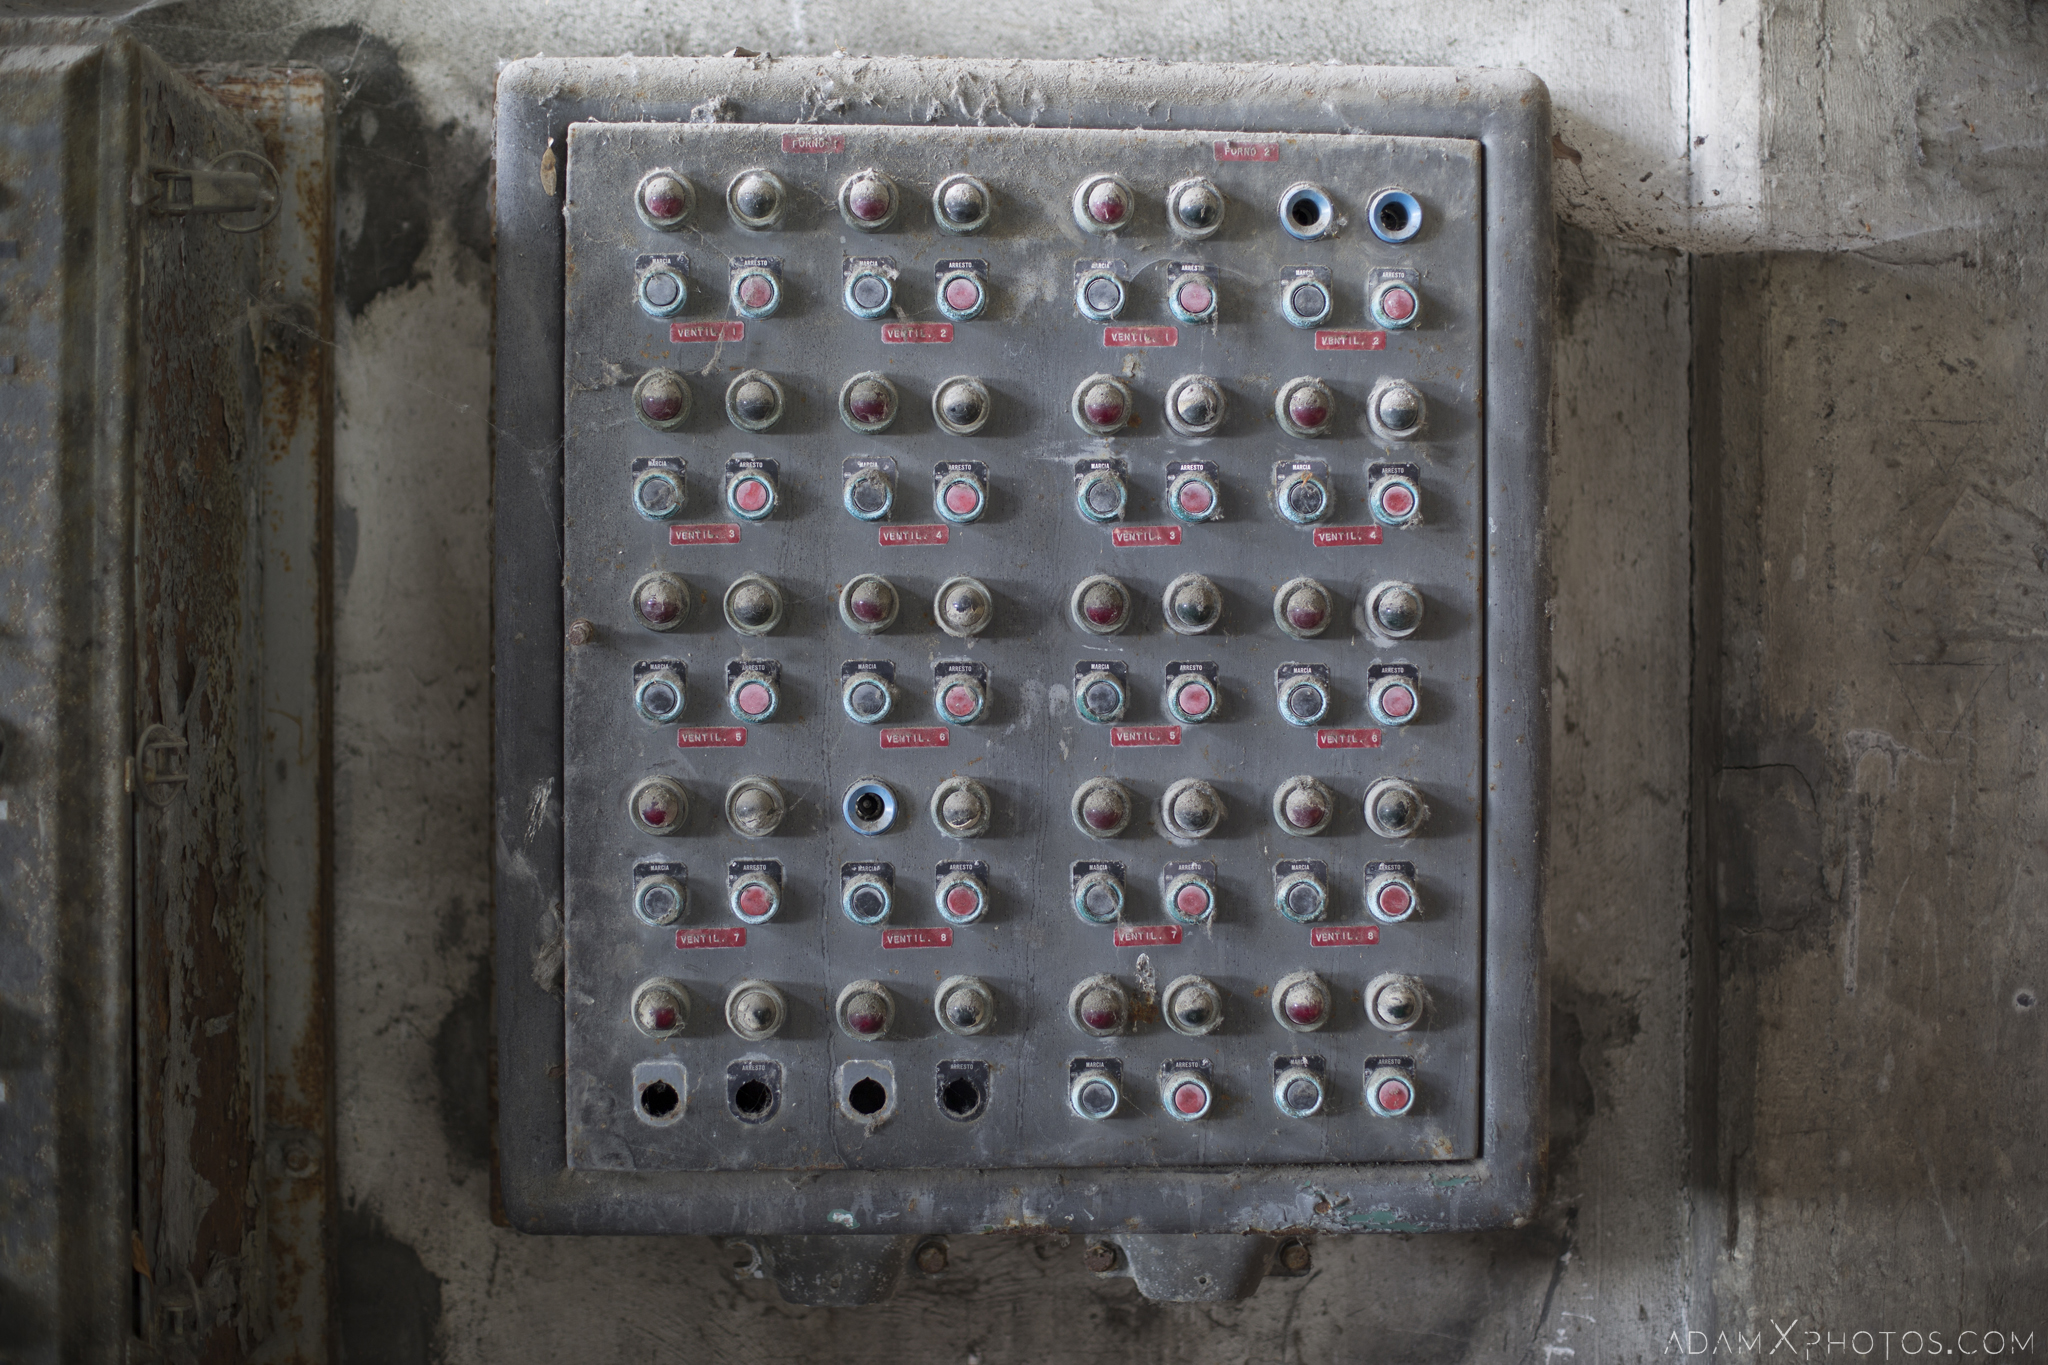 control panel buttons switches Circle Industry Cement factory industrial industy Adam X Urban Exploration Italy Italia Access 2016 Abandoned decay lost forgotten derelict location creepy haunting eerie